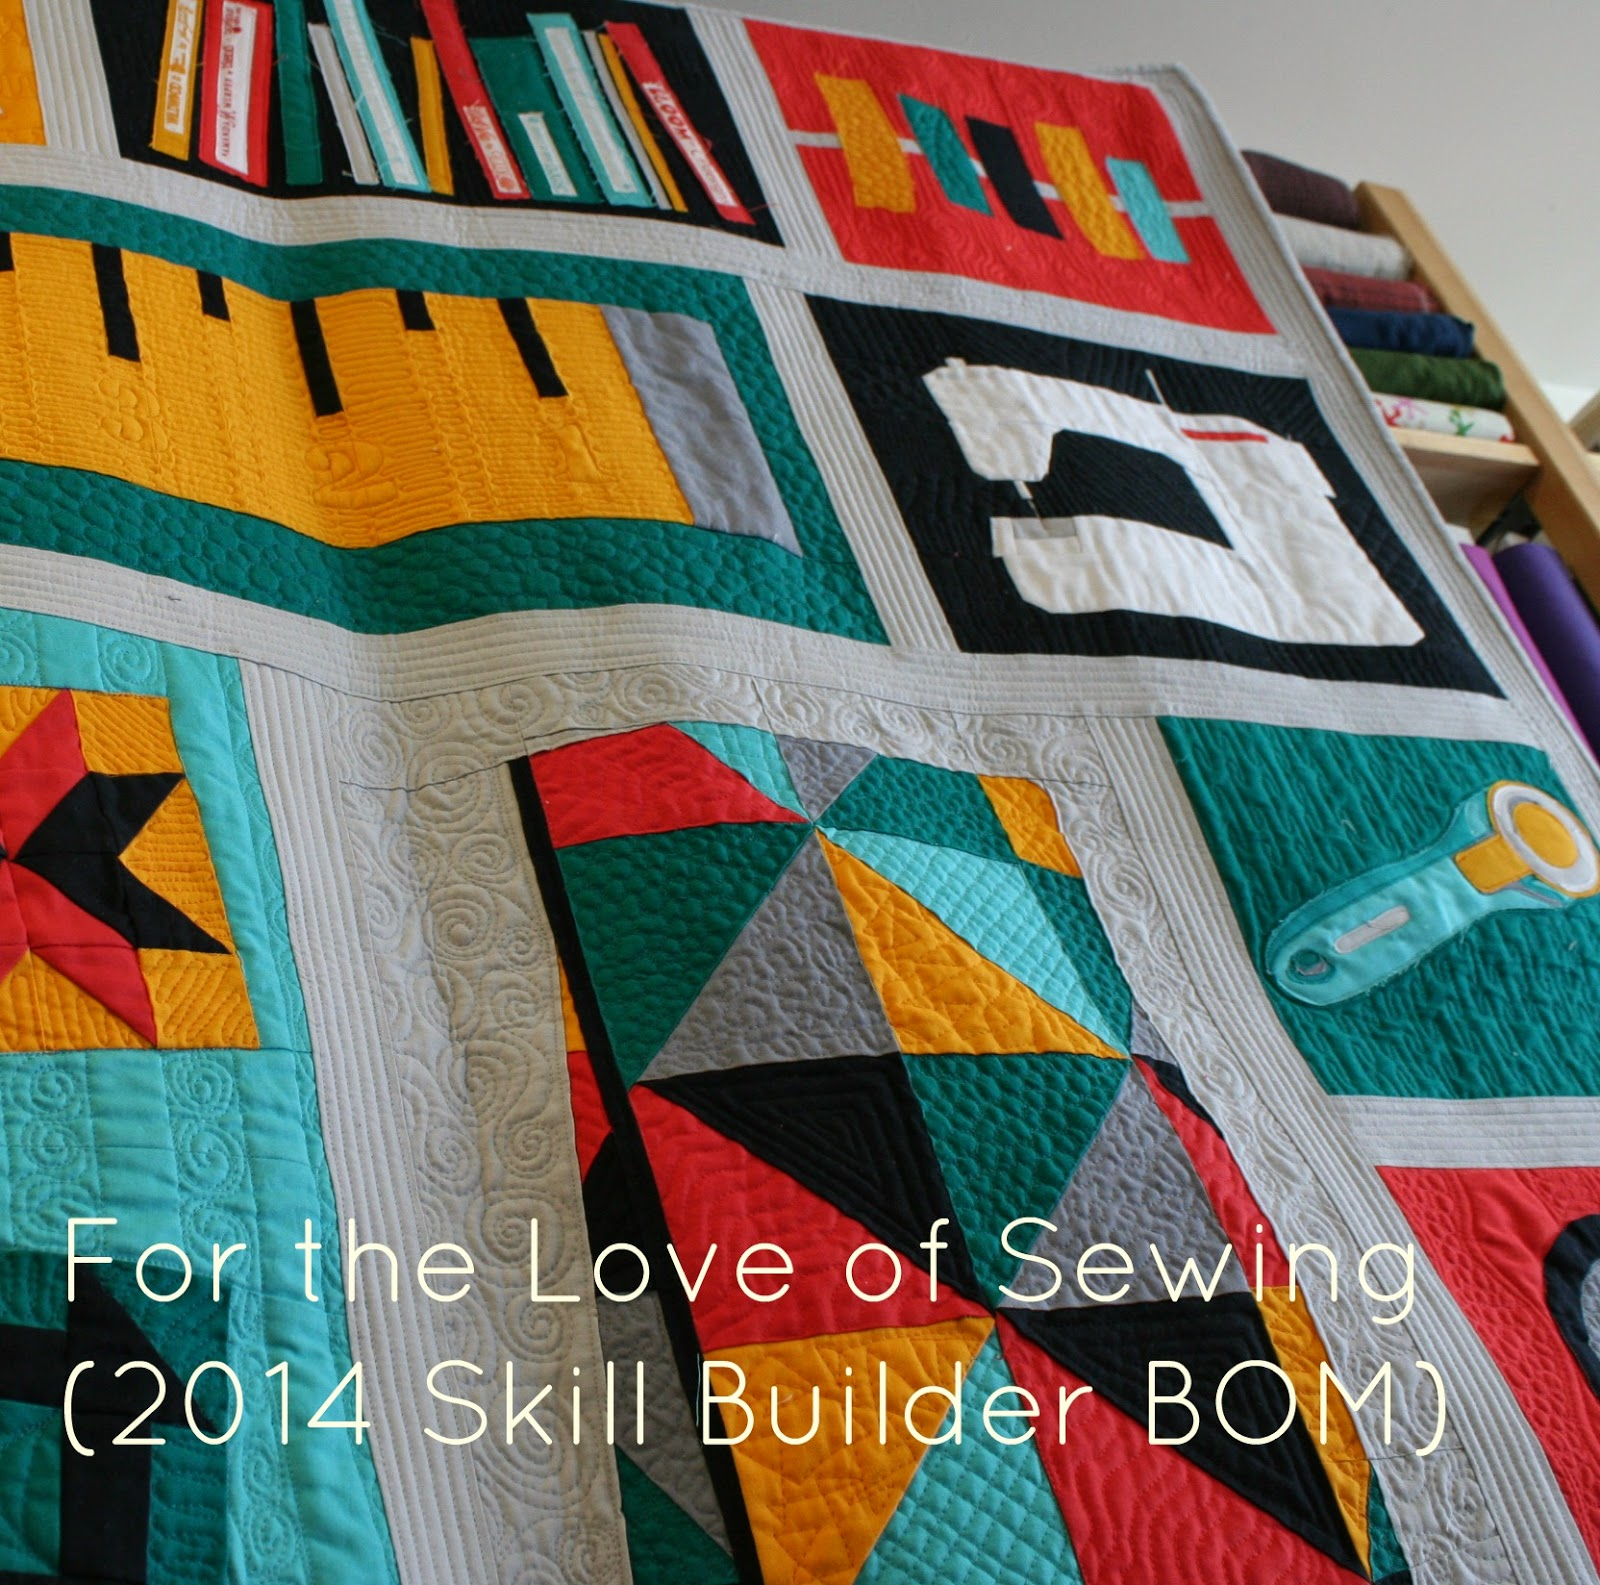 http://quarterinchfromtheedge.blogspot.ca/2015/03/friday-finish-for-love-of-sewing.html